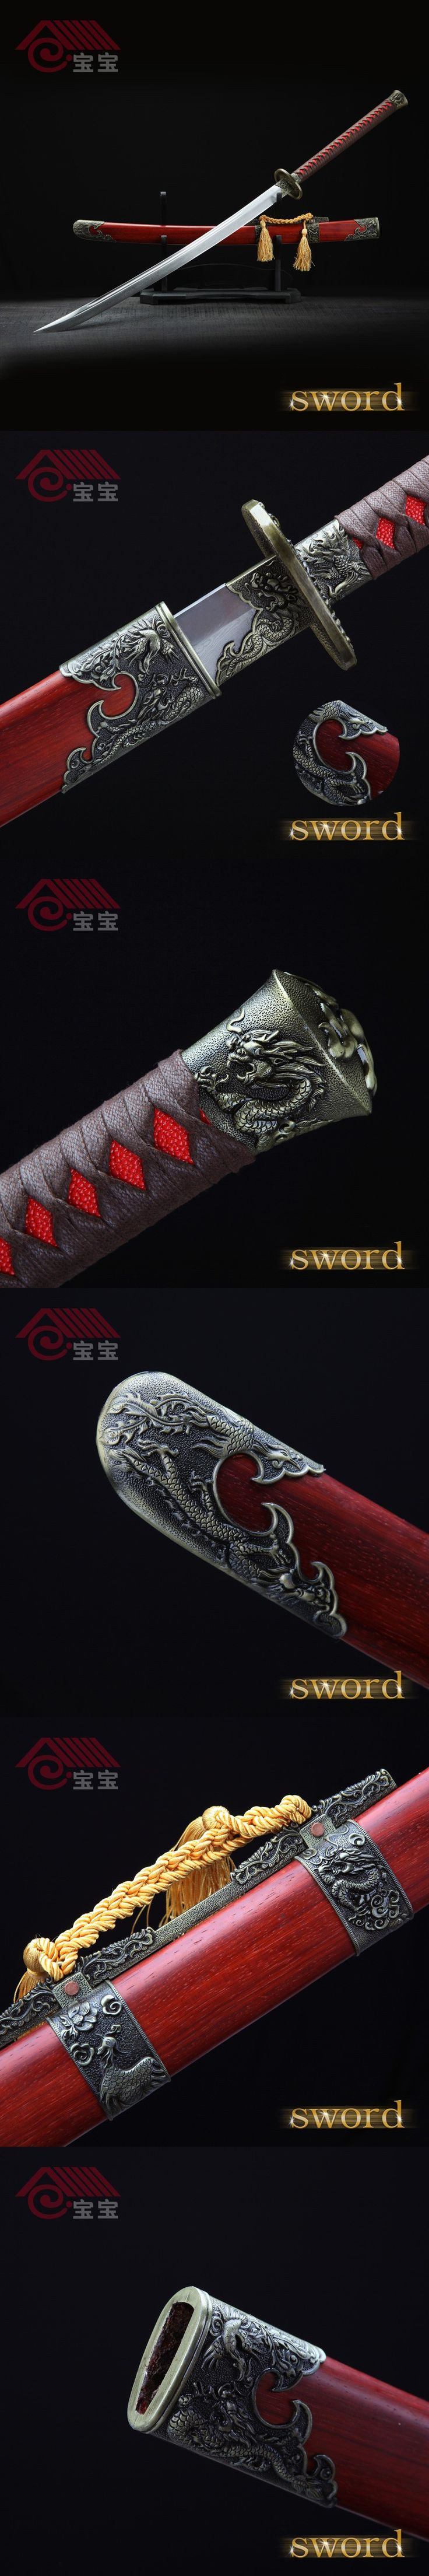 LQS15hj100040 dragon and phoenix sword vintage home decor Chinese sword $245.3